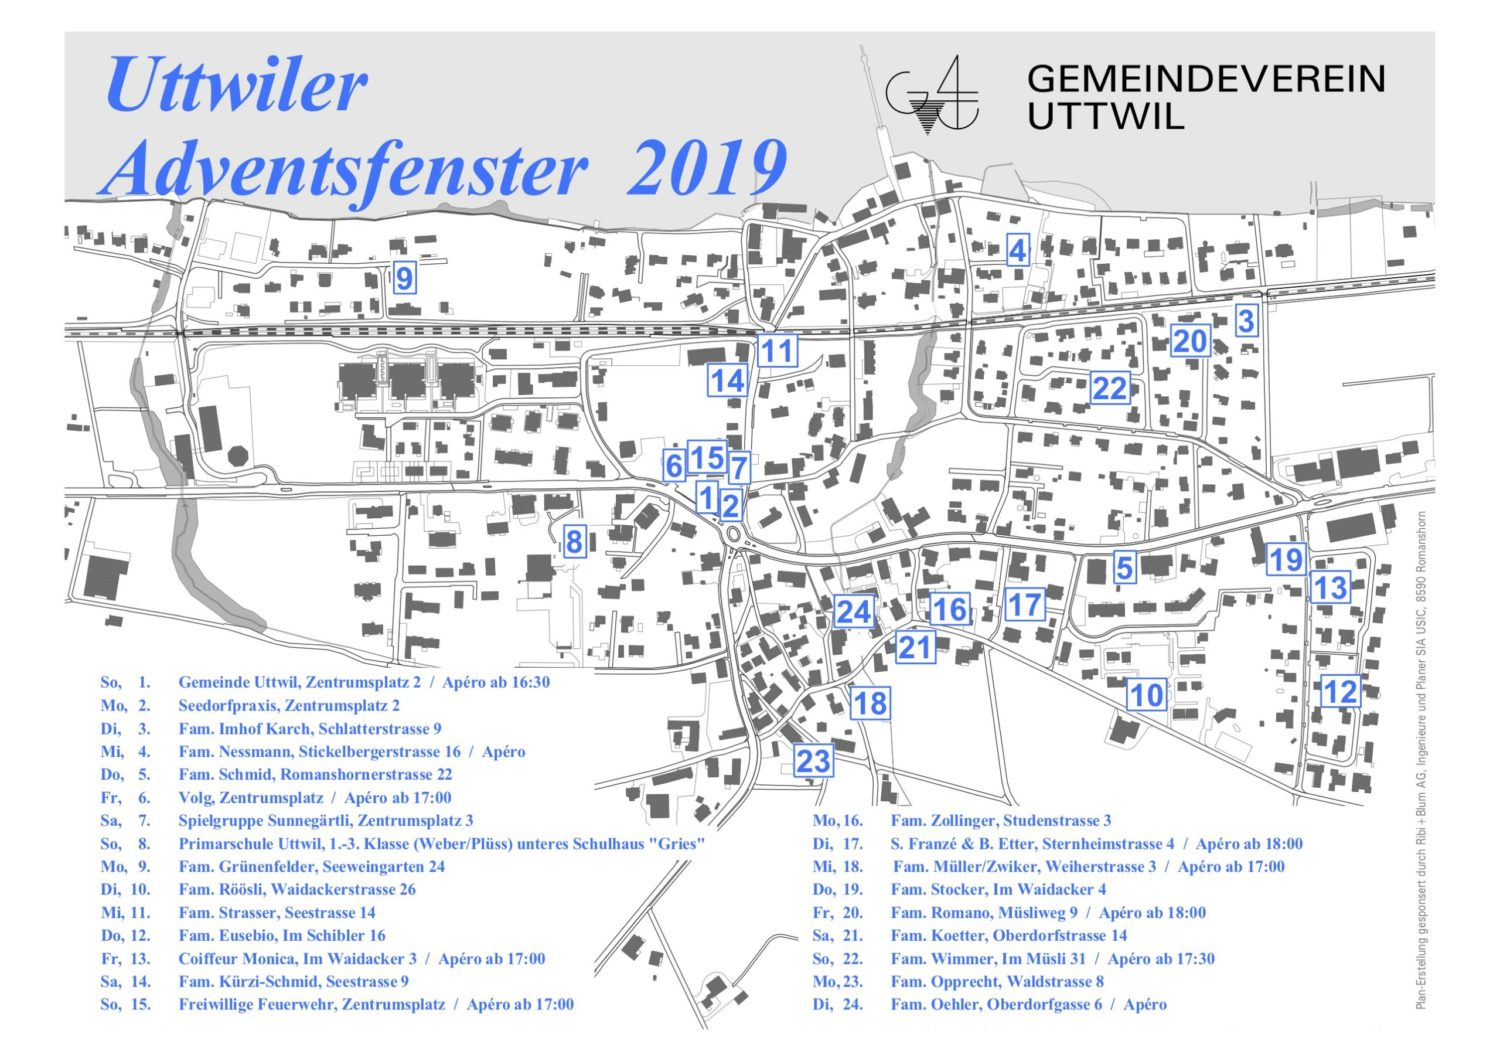 Uttwiler Adventsfensterkalender 2019